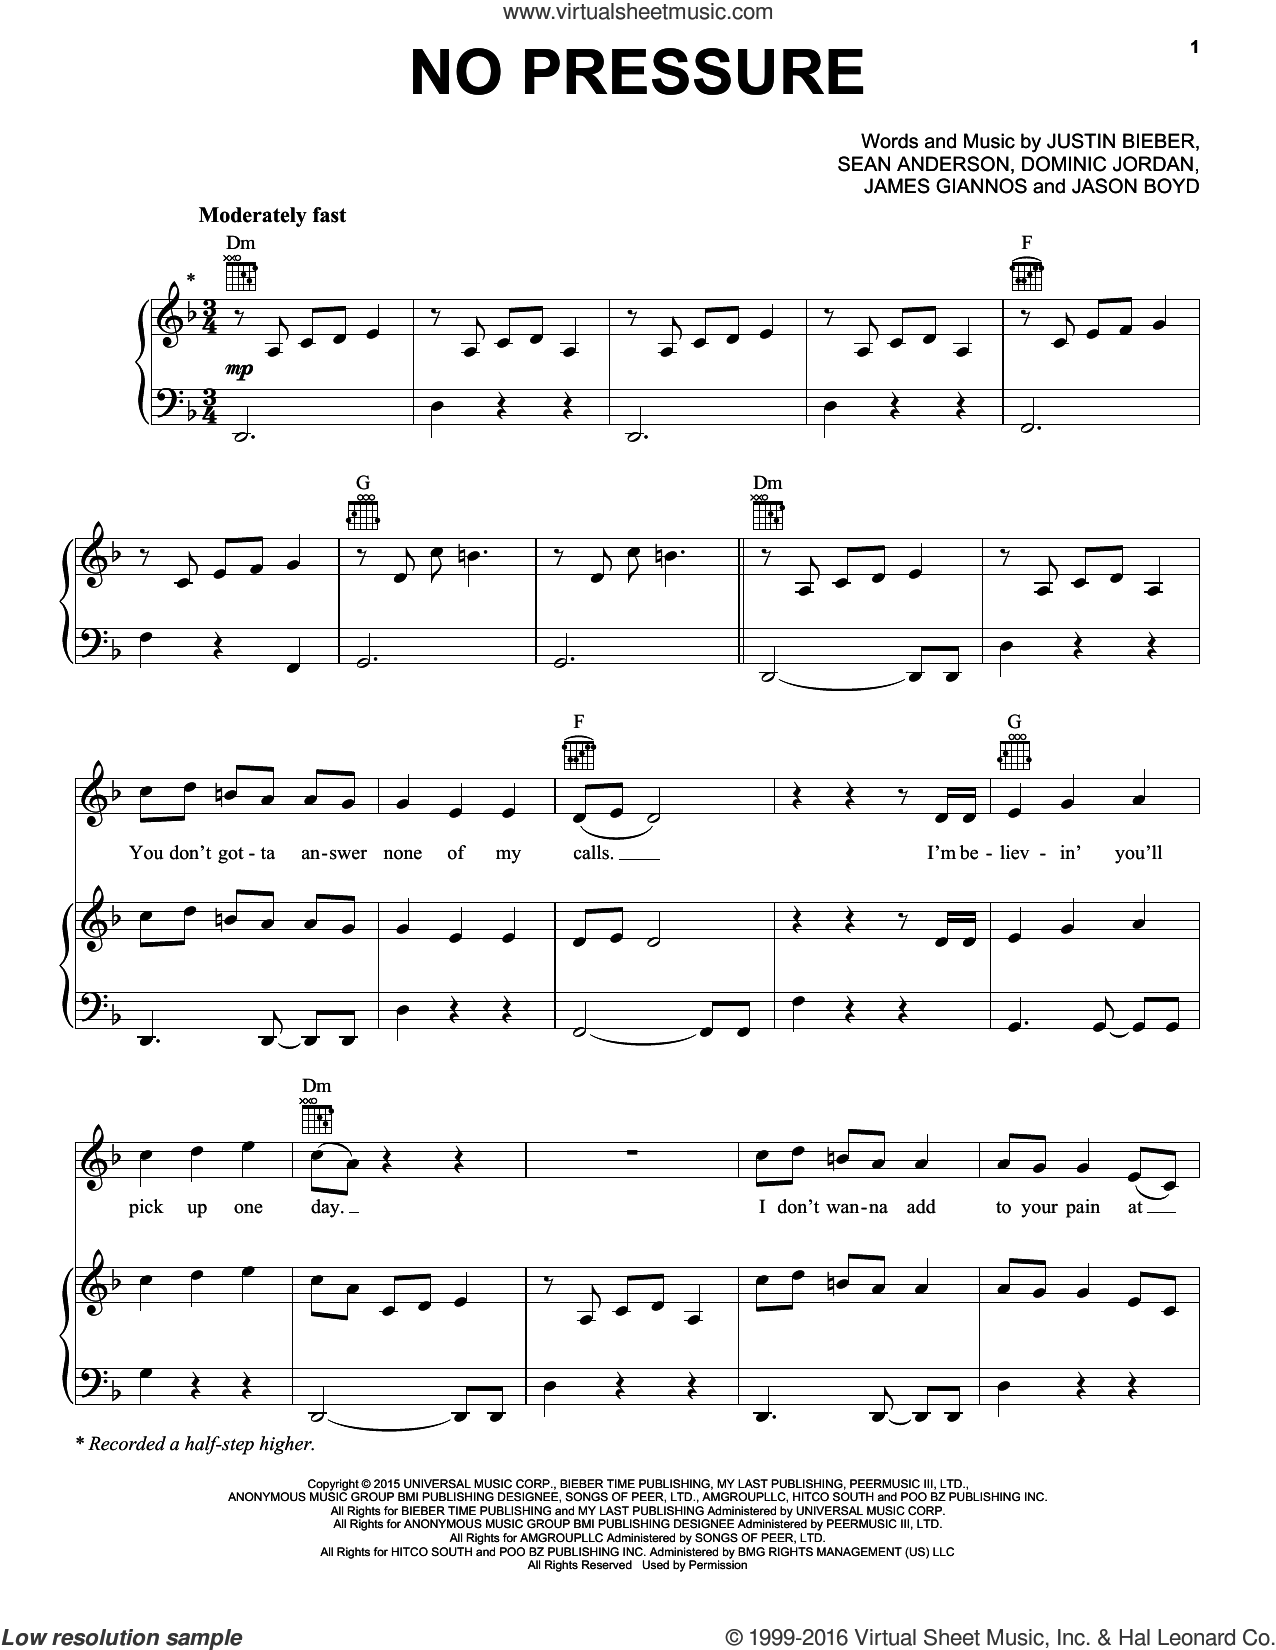 No Pressure sheet music for voice, piano or guitar by Sean Anderson